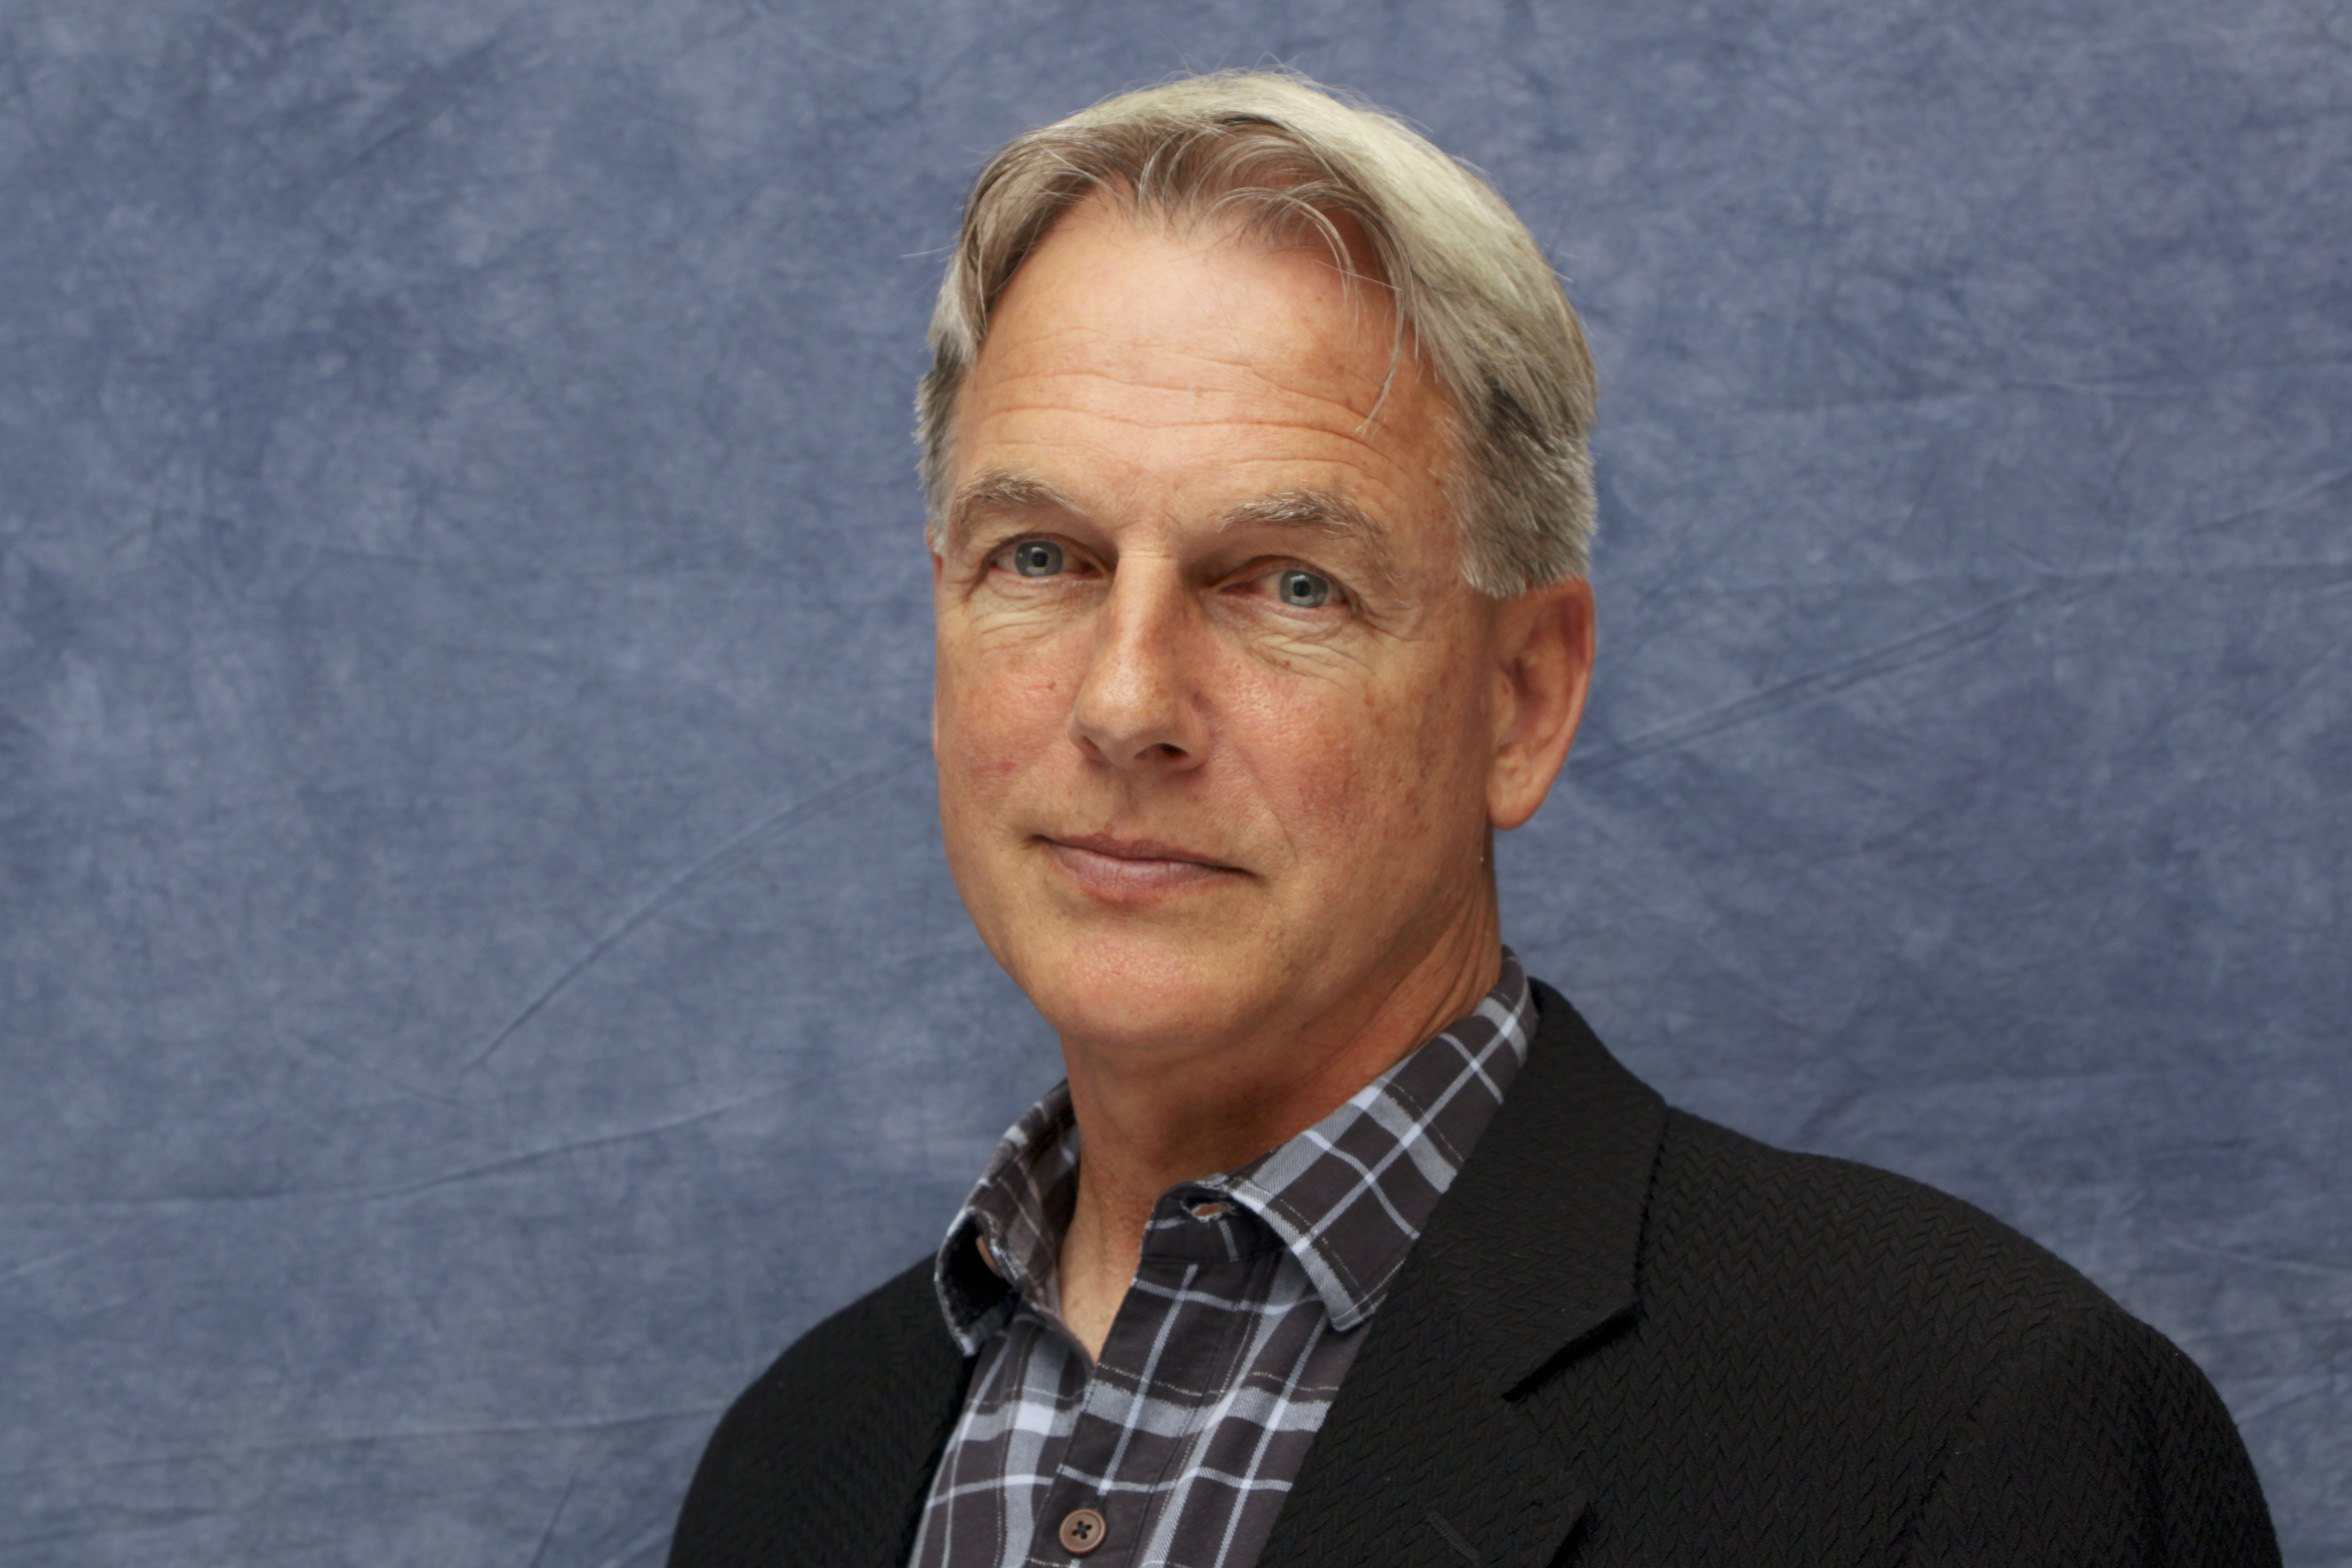 Mark Harmon visits the Four Seasons Hotel in Beverly Hills, California on April 22, 2009   Photo: Getty Images